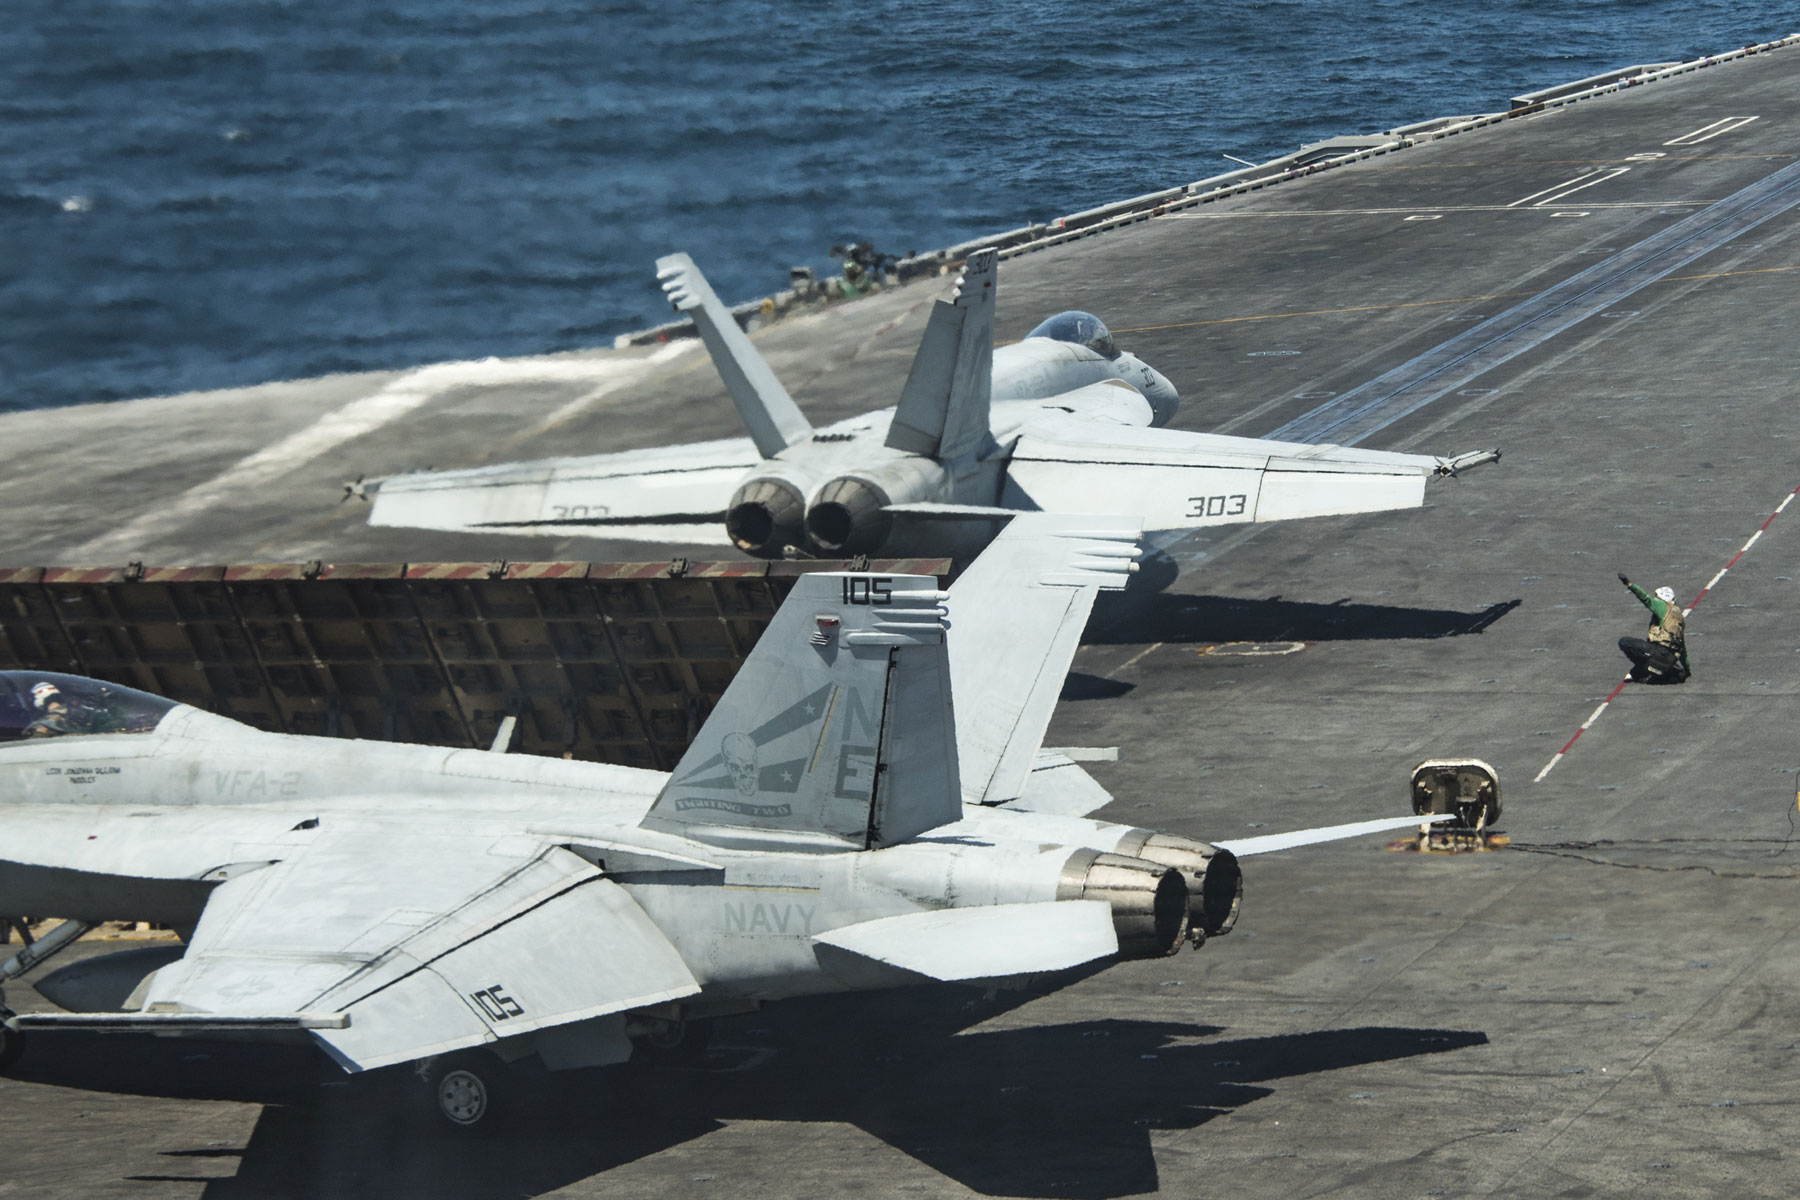 Pilot Who Ejected In April Hornet Mishap Was Senior Navy